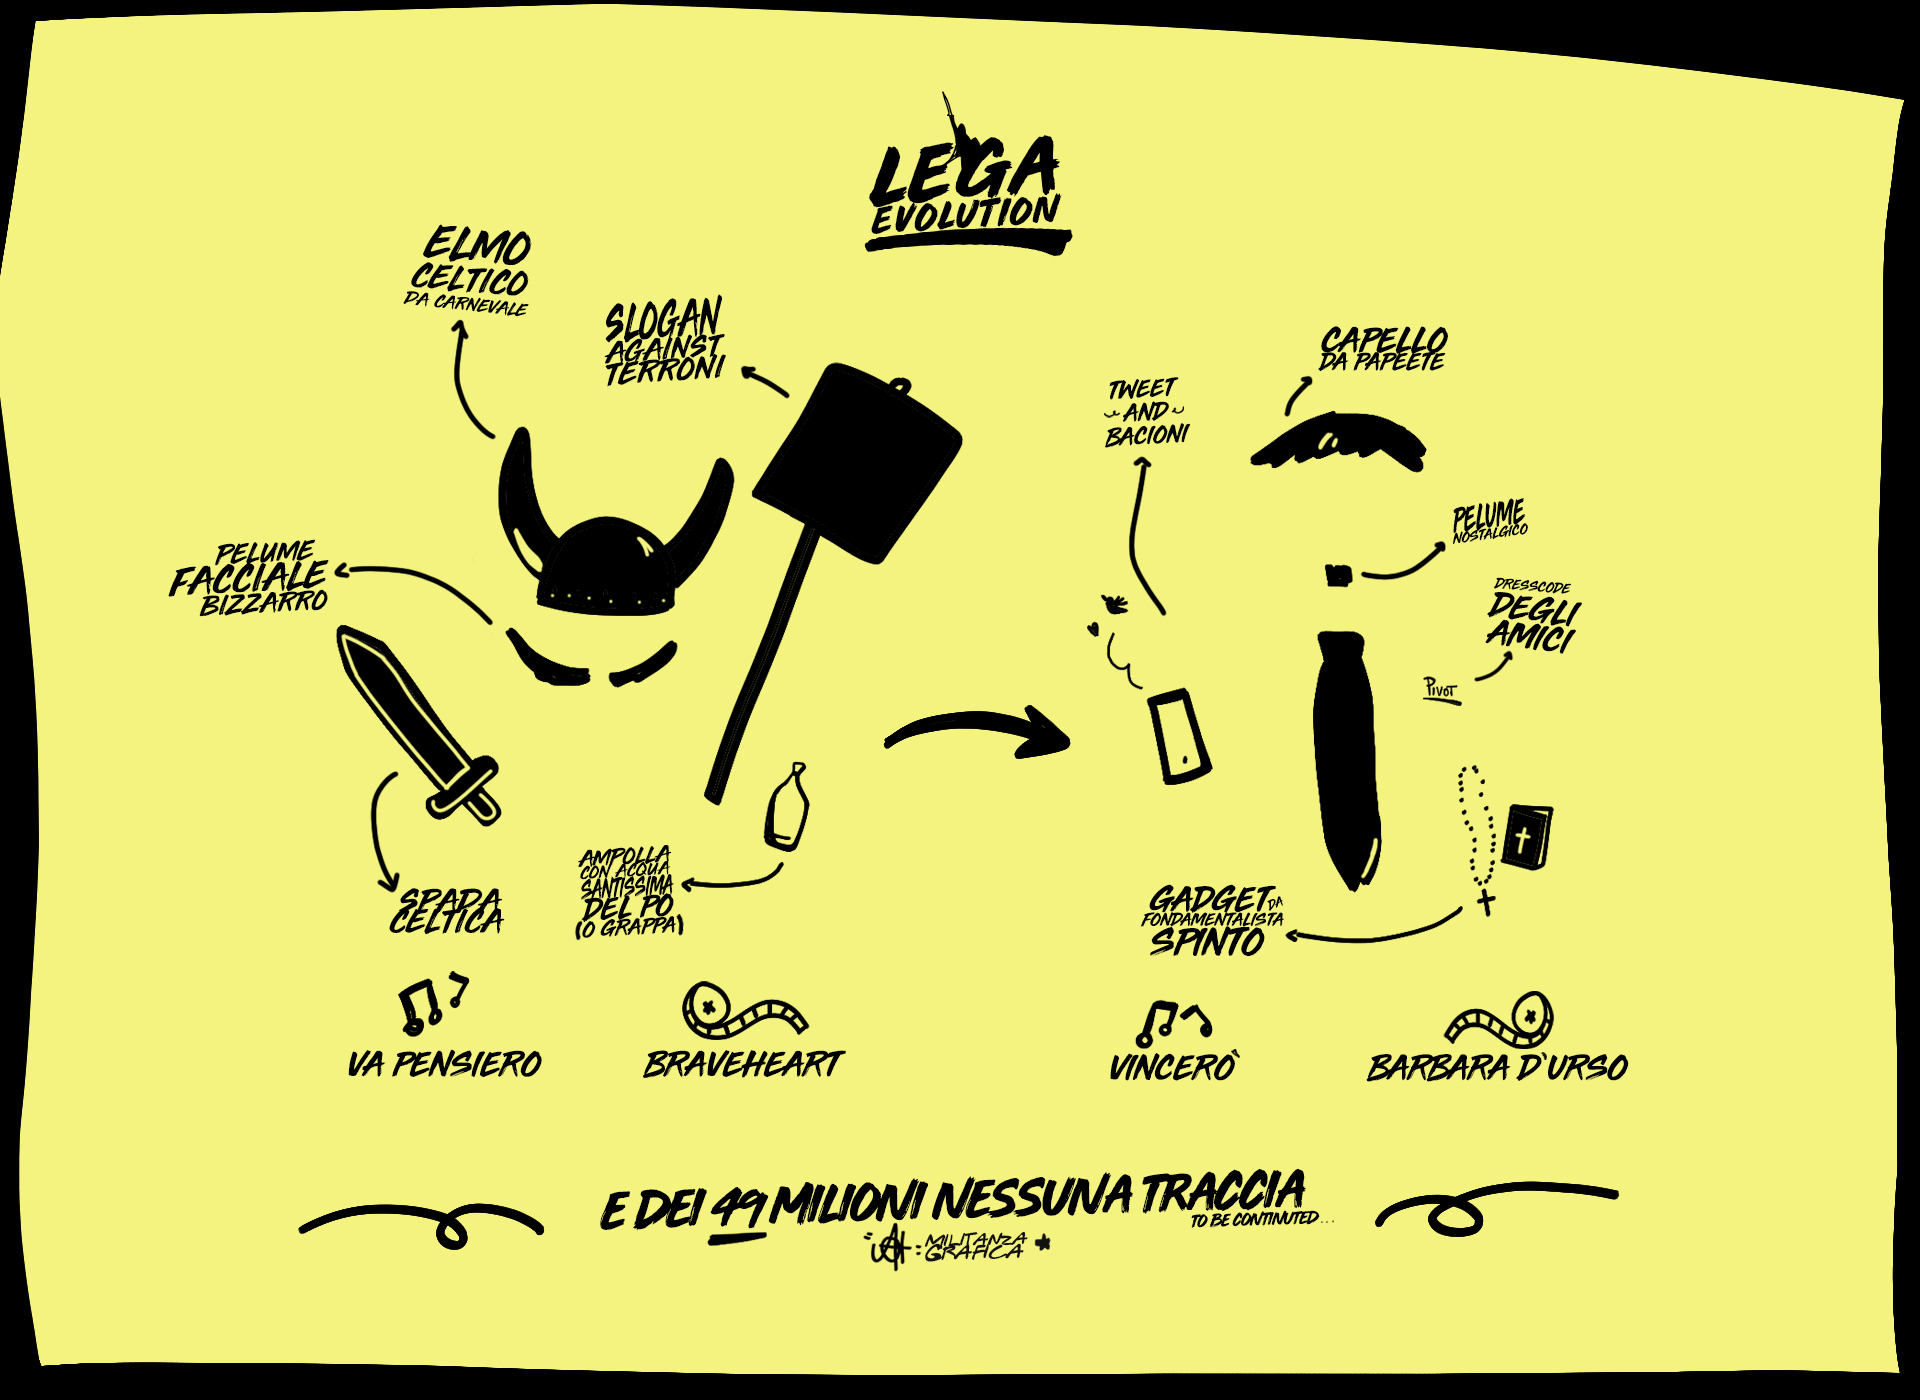 Lega Evolution